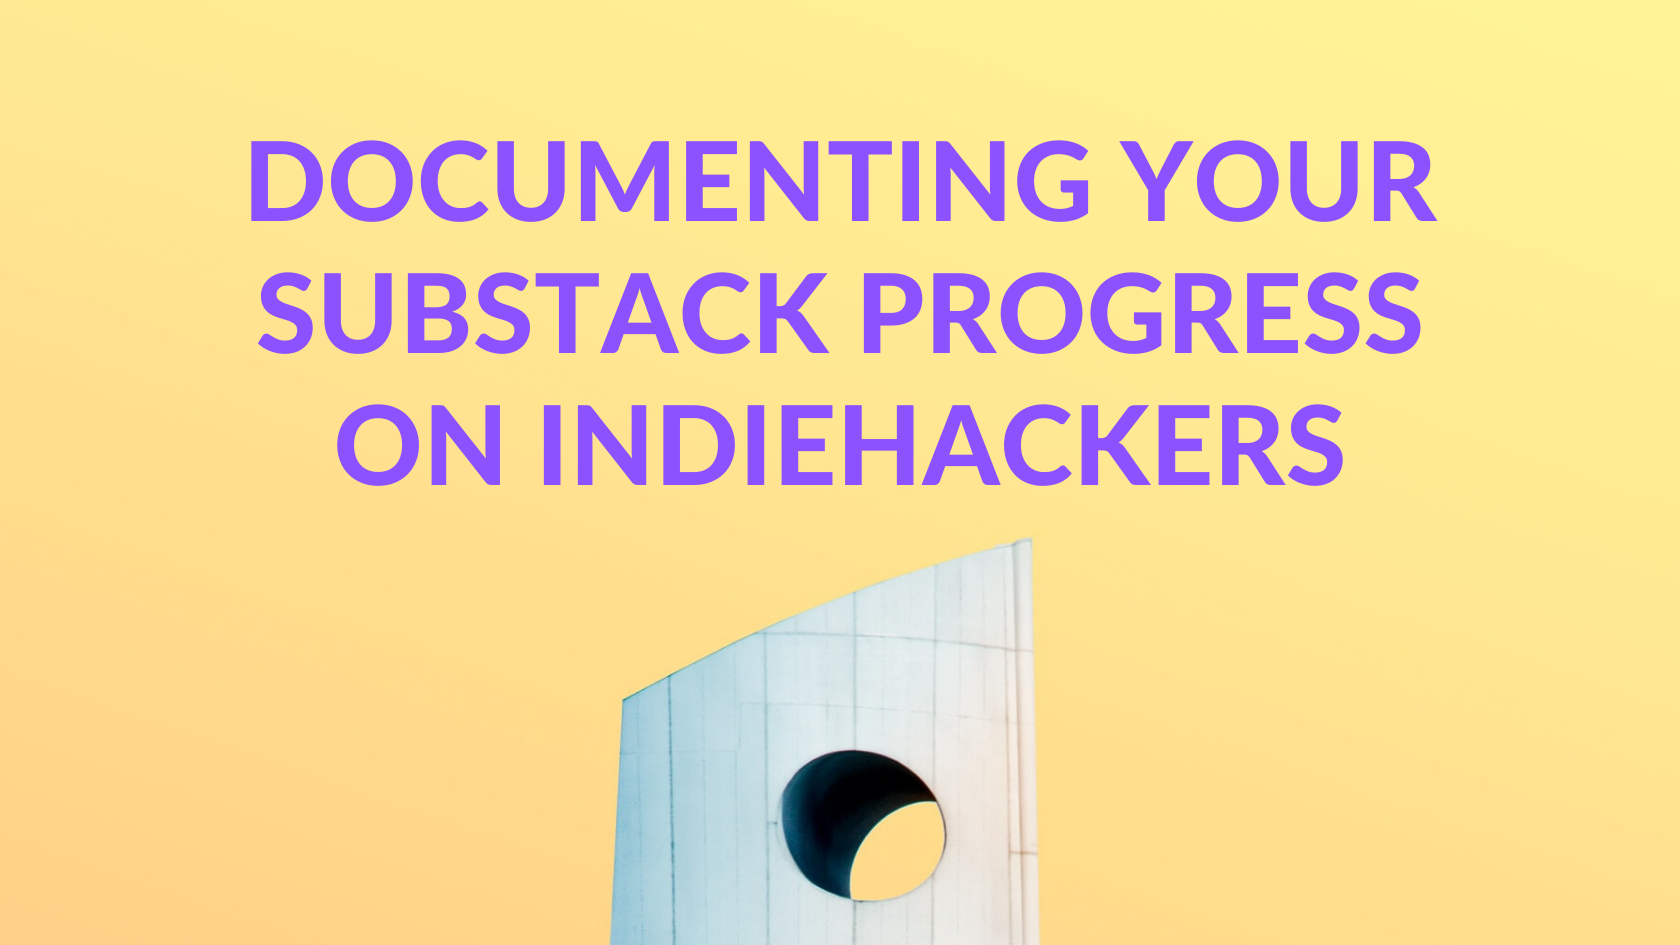 substack newsletter, substack review, substack threads, substack pricing, substack embed podcast, indiehackers substack